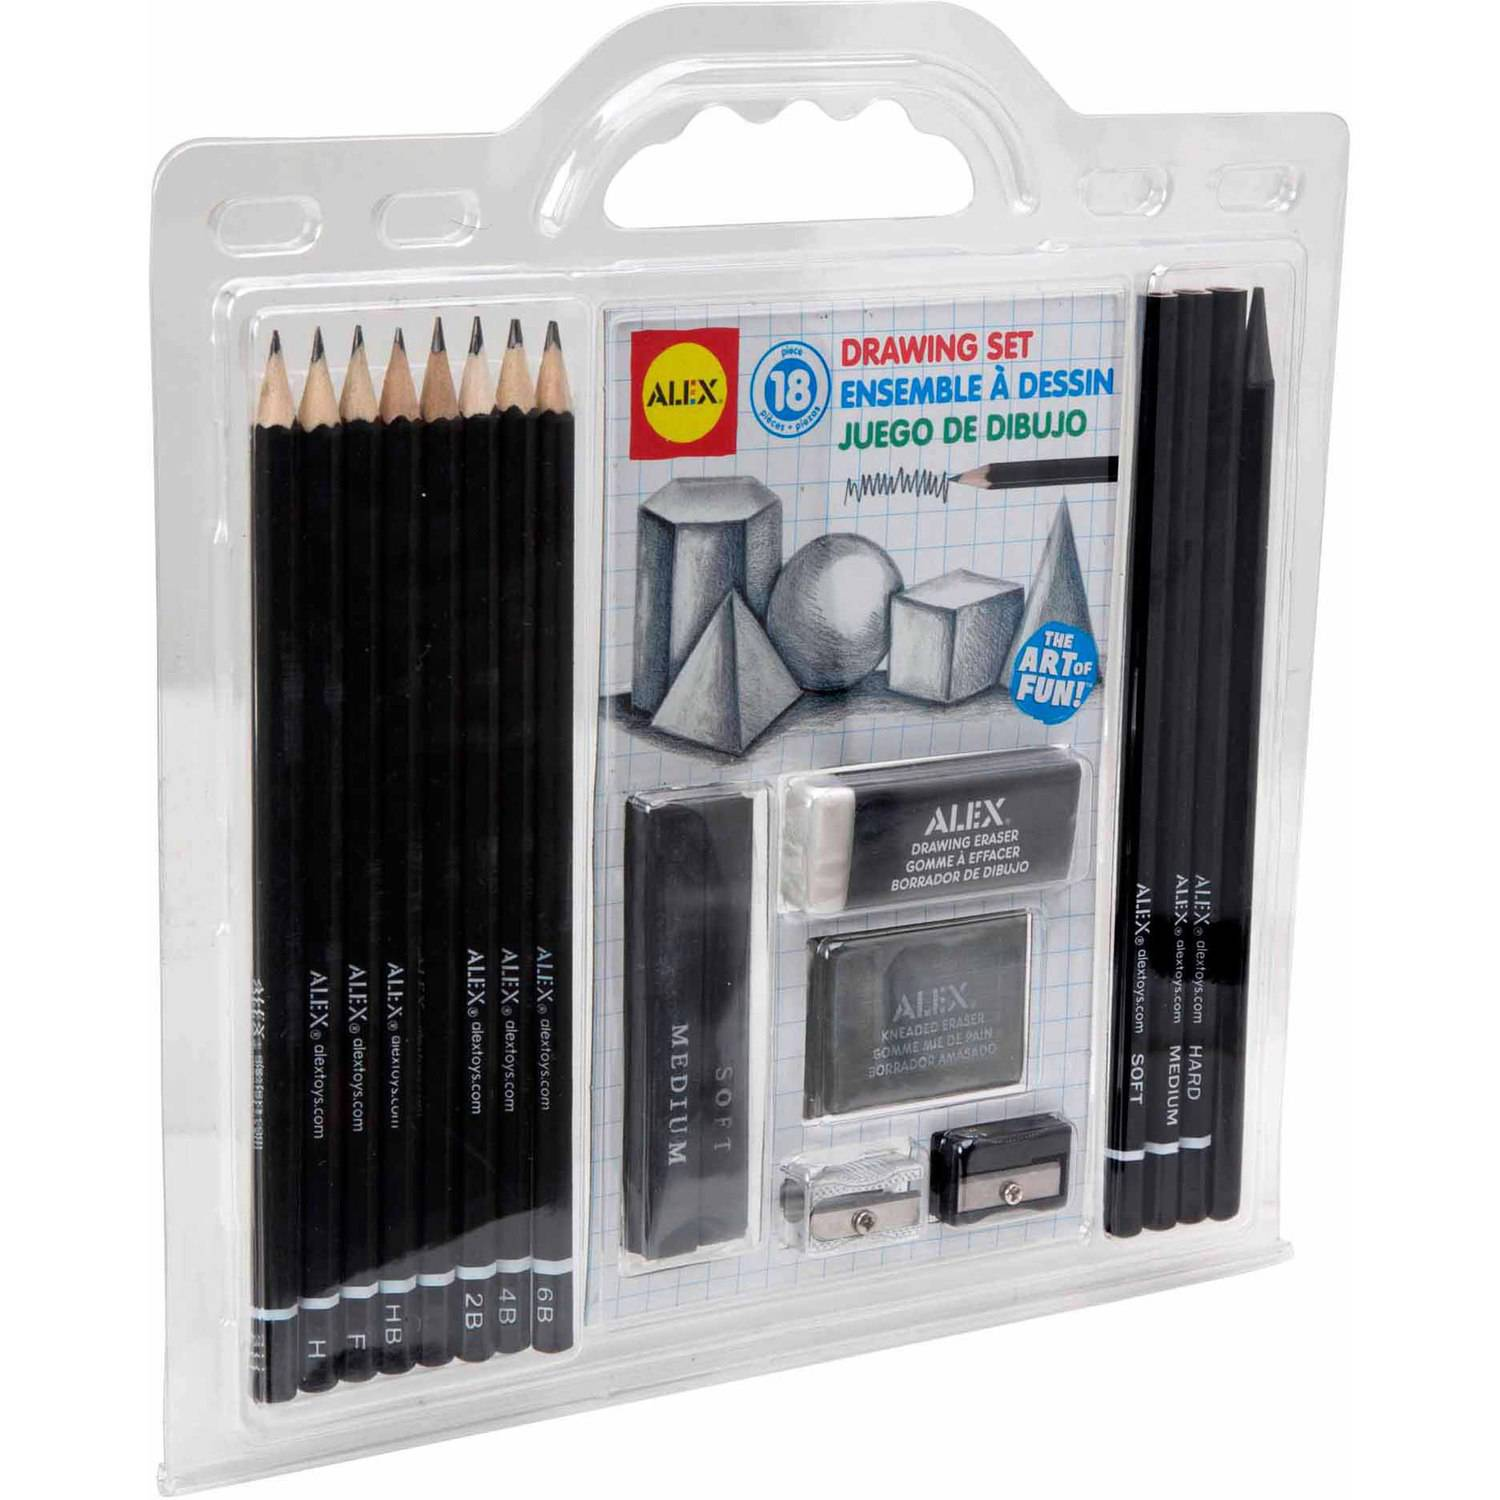 ALEX Toys Artist Studio Drawing Set